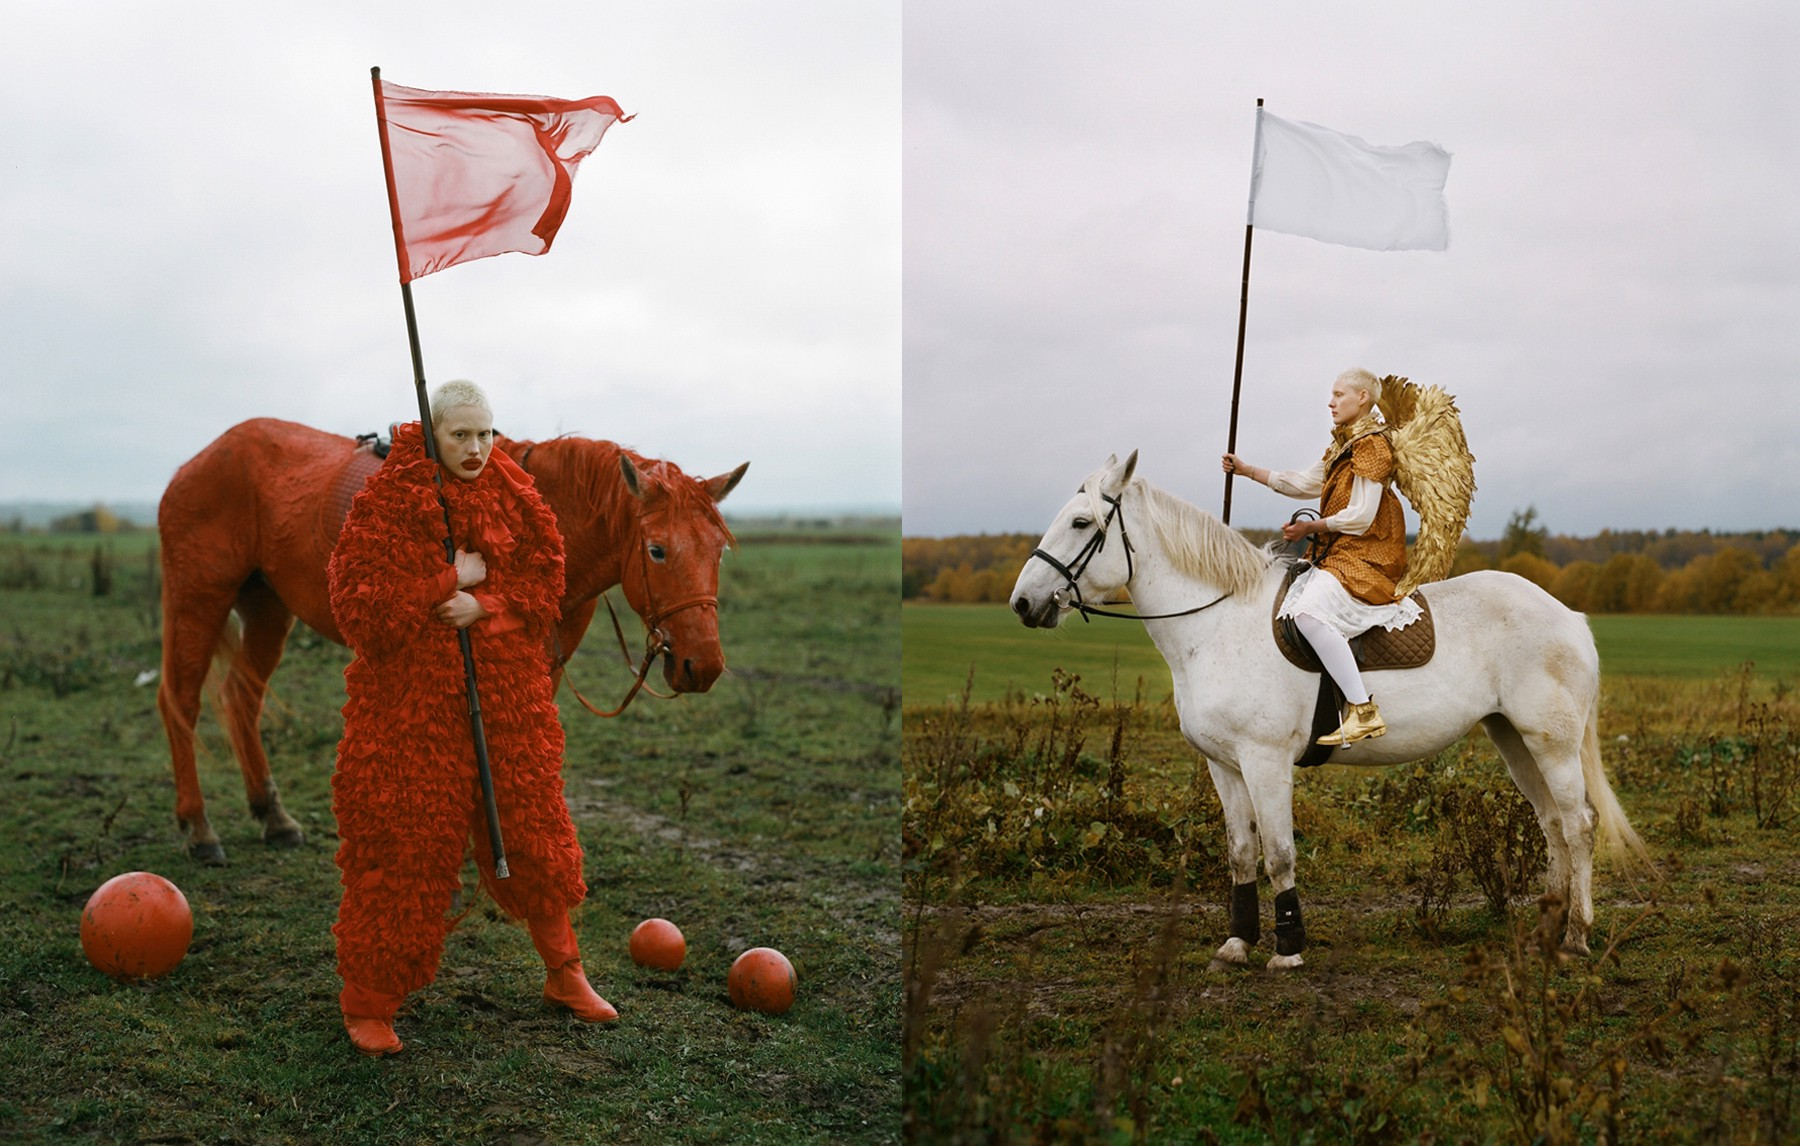 """Clowns vs. archangels. """"The red horseman/clown represents all revolutionists and politicians at the time of the Bolshevik Revolution, the Red Guard, and its absurdity. The white horseman or archangel represents the White opposition and faith, hope and purity."""" All images and words: Uldus Bakhtiozina"""